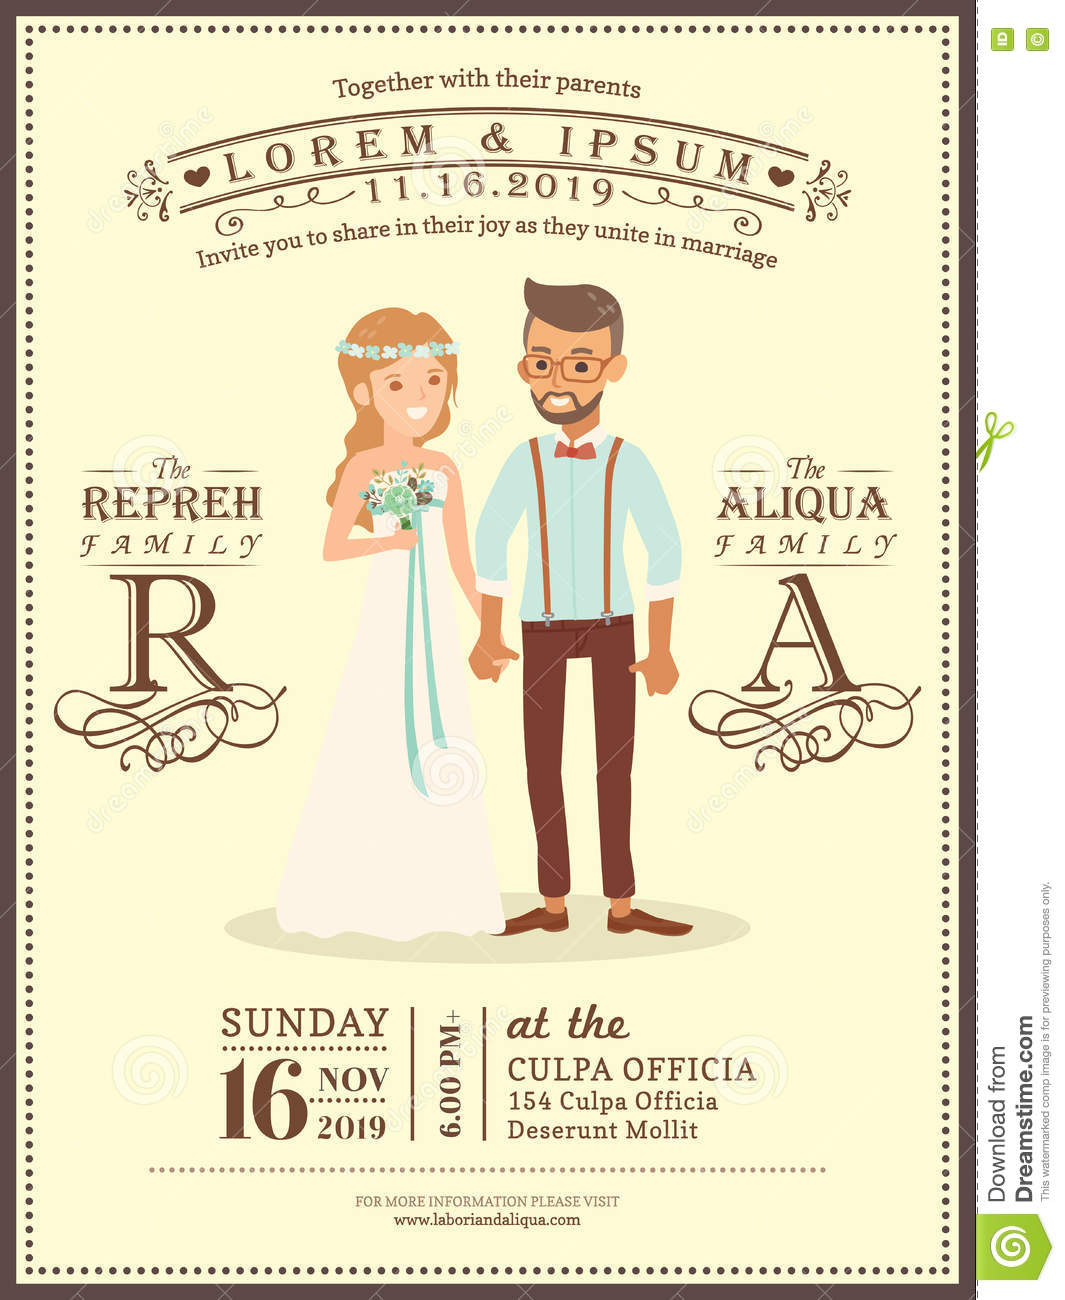 Wedding Couple Groom And Bride Cartoon Wedding Invitation Card Stock Vector - Image: 72479478